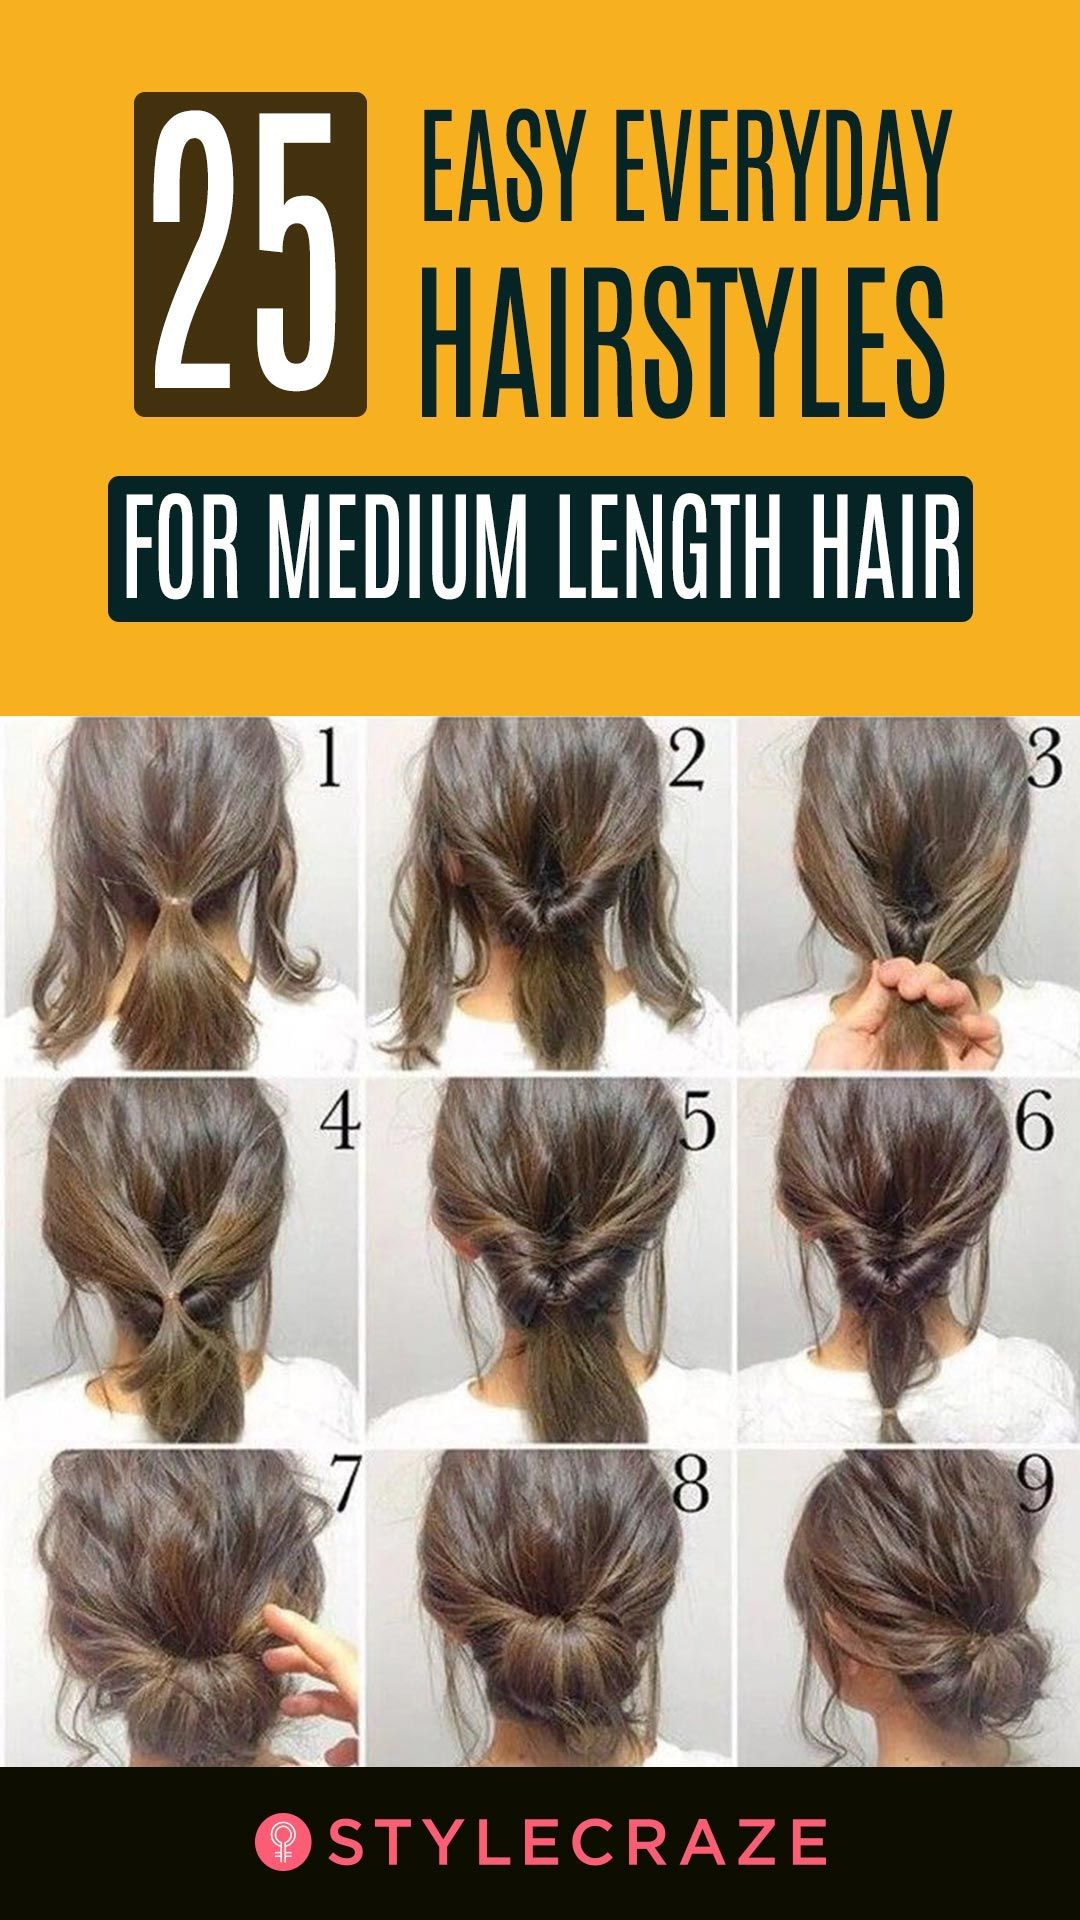 25 Easy Everyday Hairstyles For Medium Length Hair Medium Length Hair Styles Hairstyles For Medium Length Hair Tutorial Hair Tutorials Easy